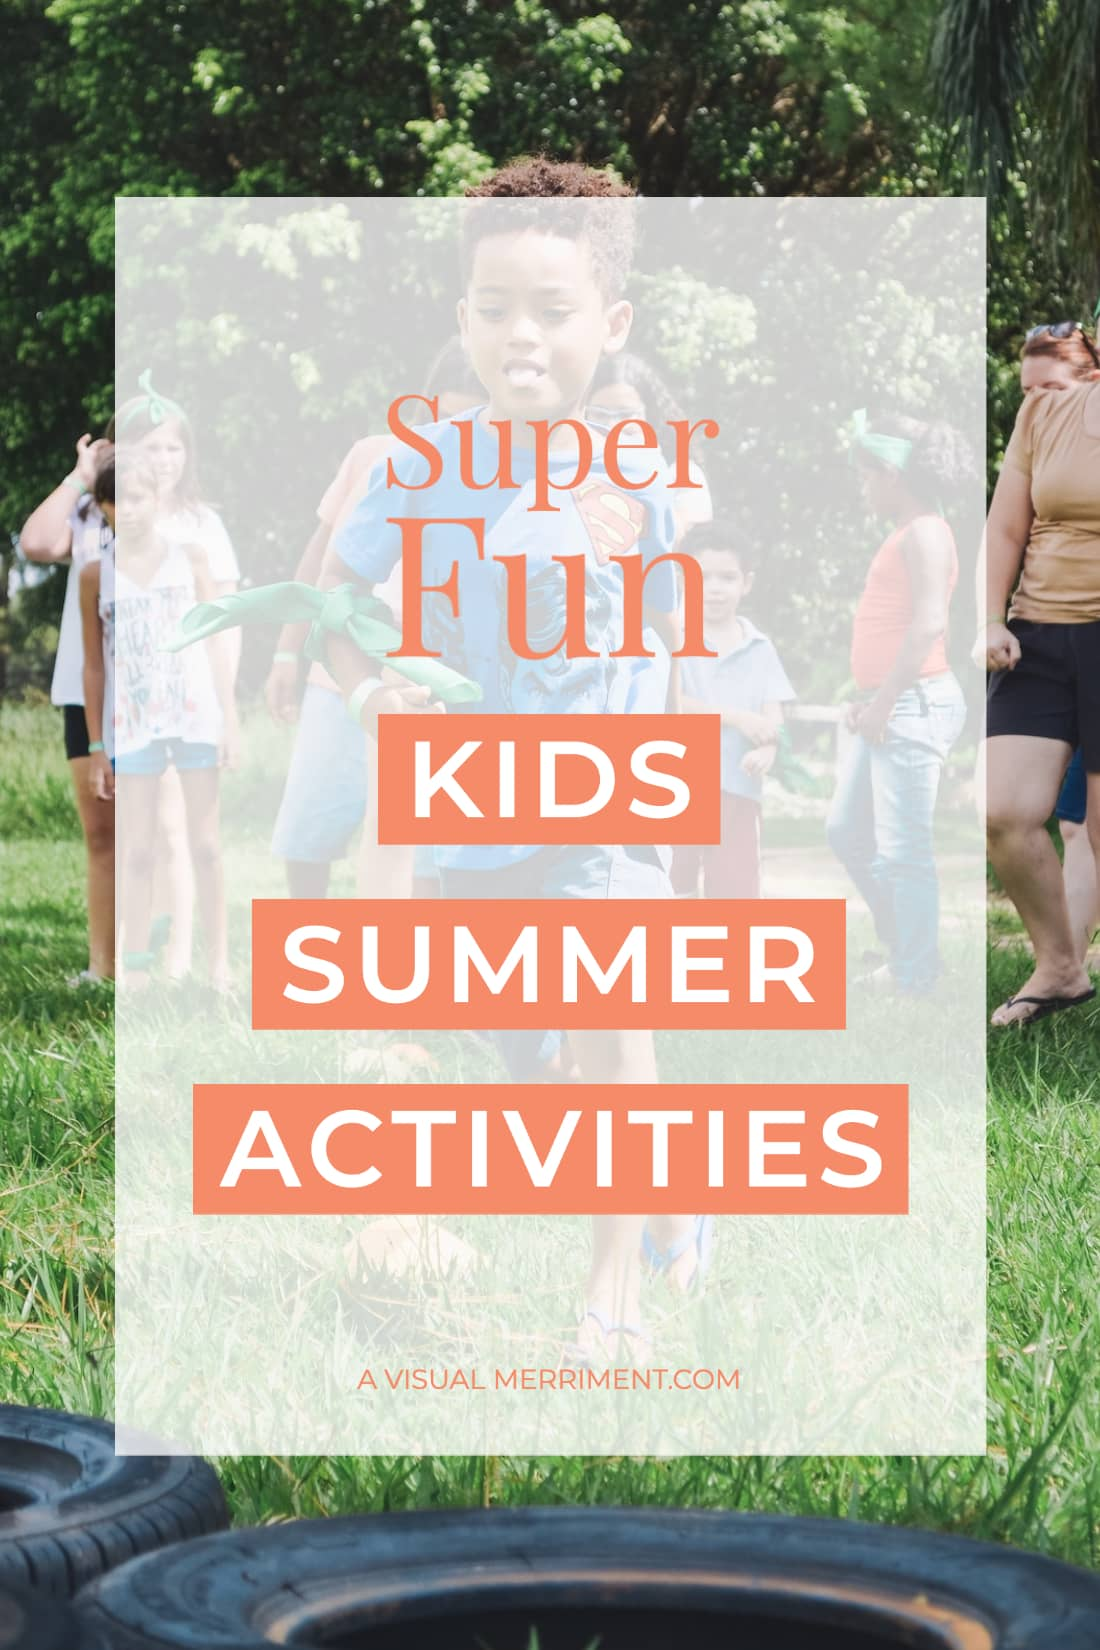 Fun things for the kids to do this summer